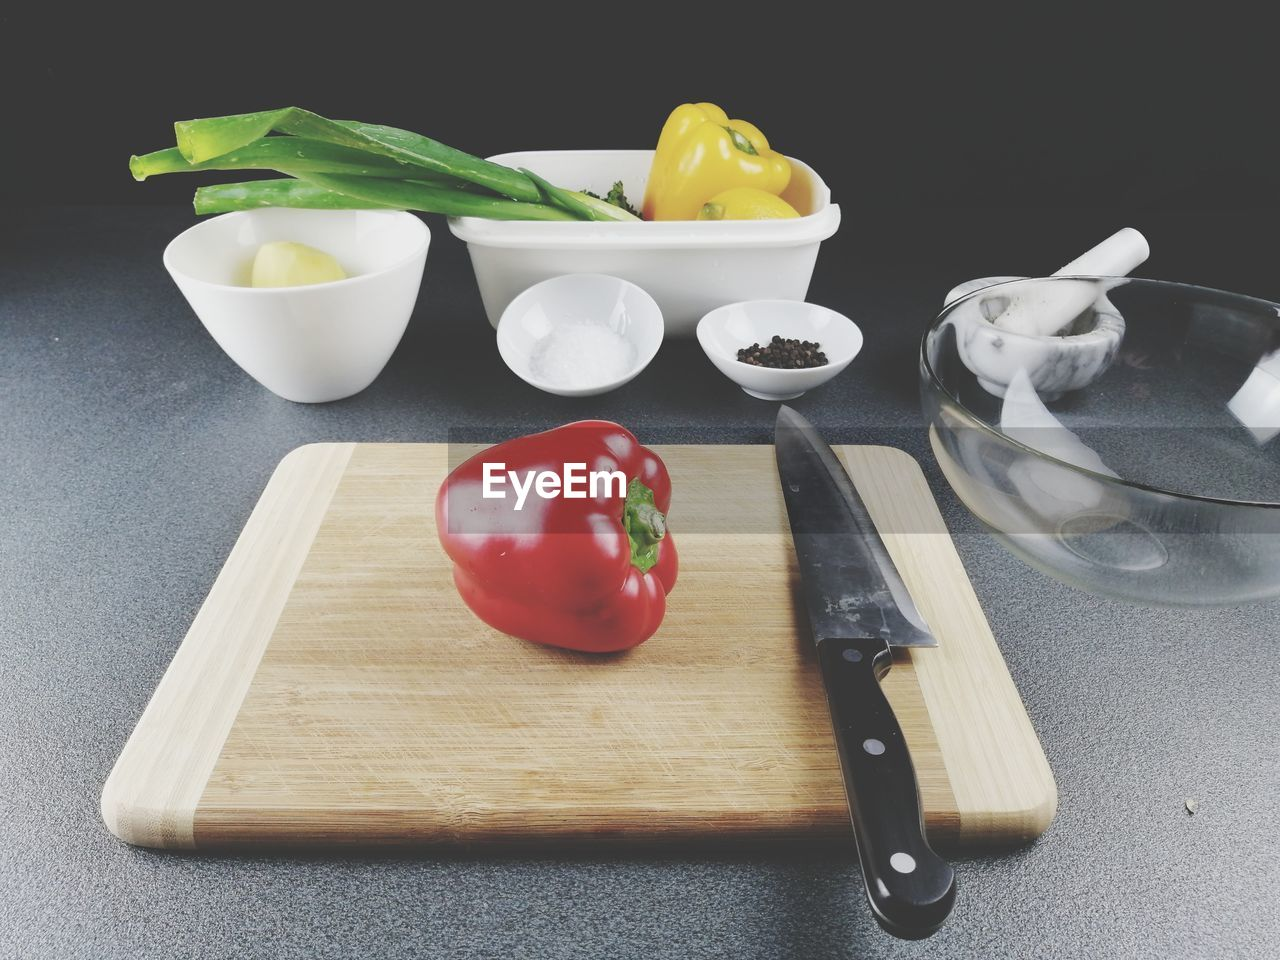 food, food and drink, vegetable, still life, freshness, healthy eating, indoors, wellbeing, cutting board, tomato, bell pepper, kitchen knife, knife, pepper, no people, fruit, red, close-up, kitchen utensil, red bell pepper, preparation, preparing food, chopped, table knife, tray